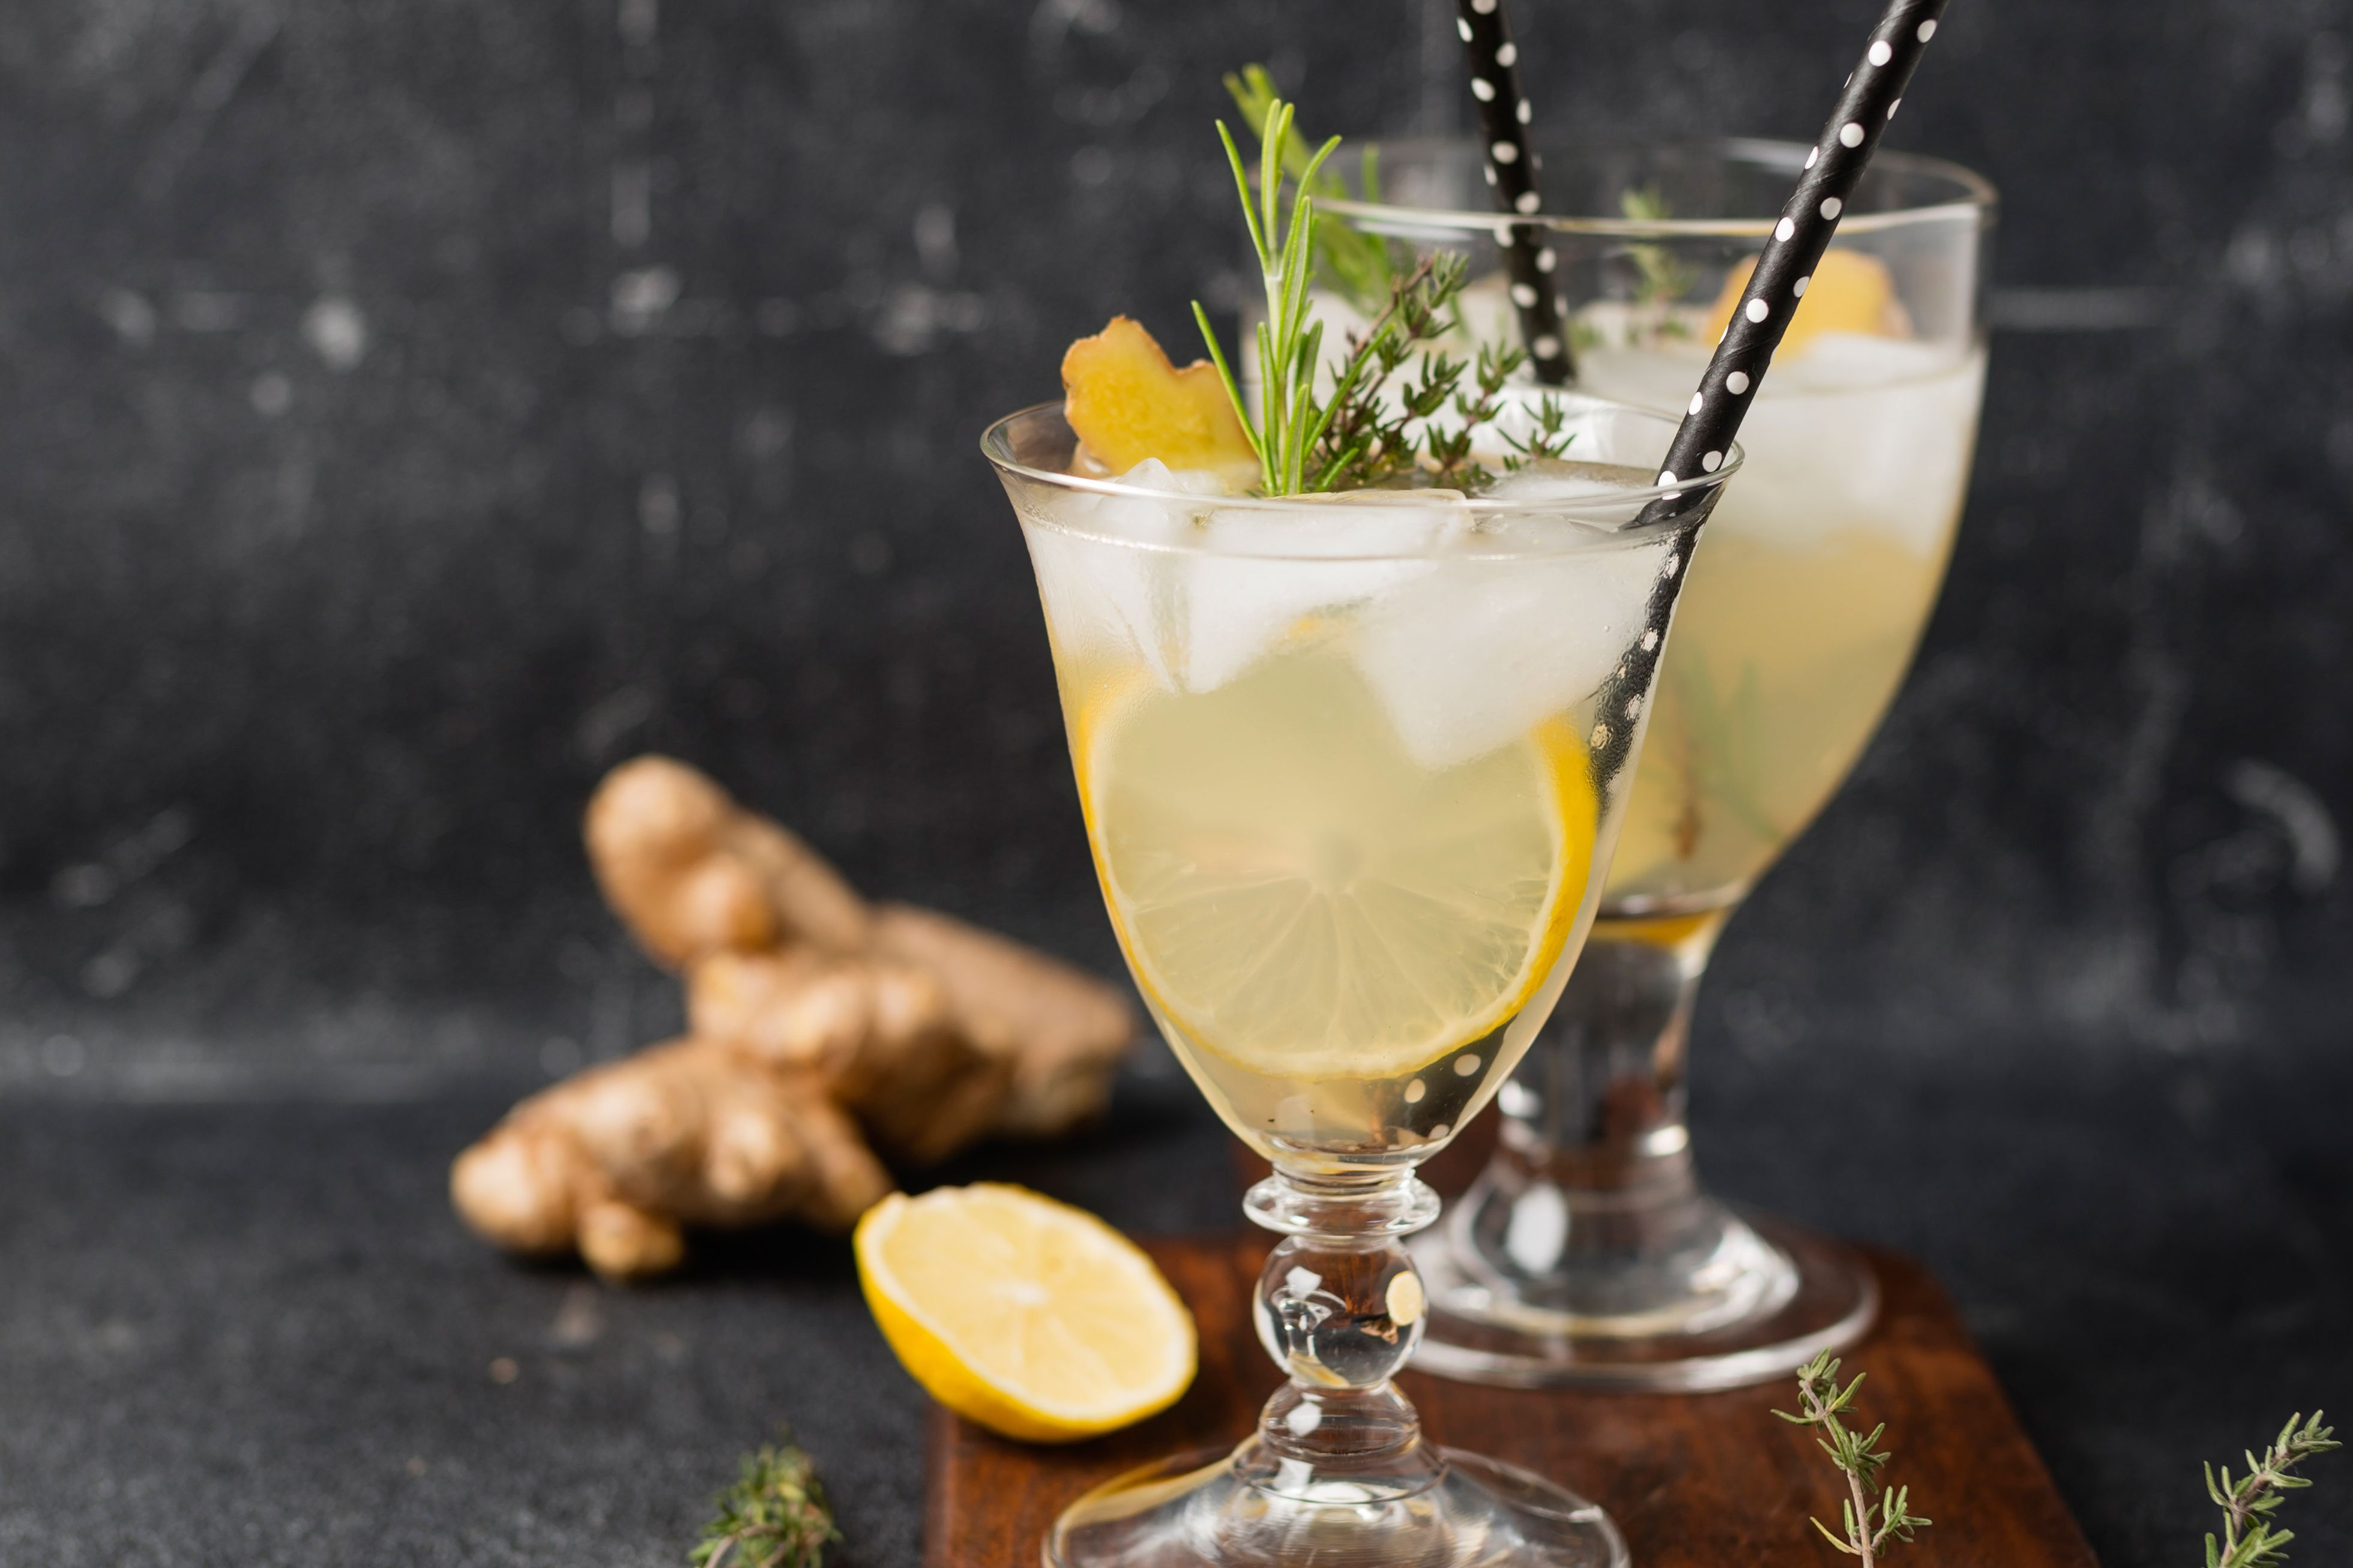 Opt for the Complex Whiskey Sour and Mix Up an Old Thyme Sour